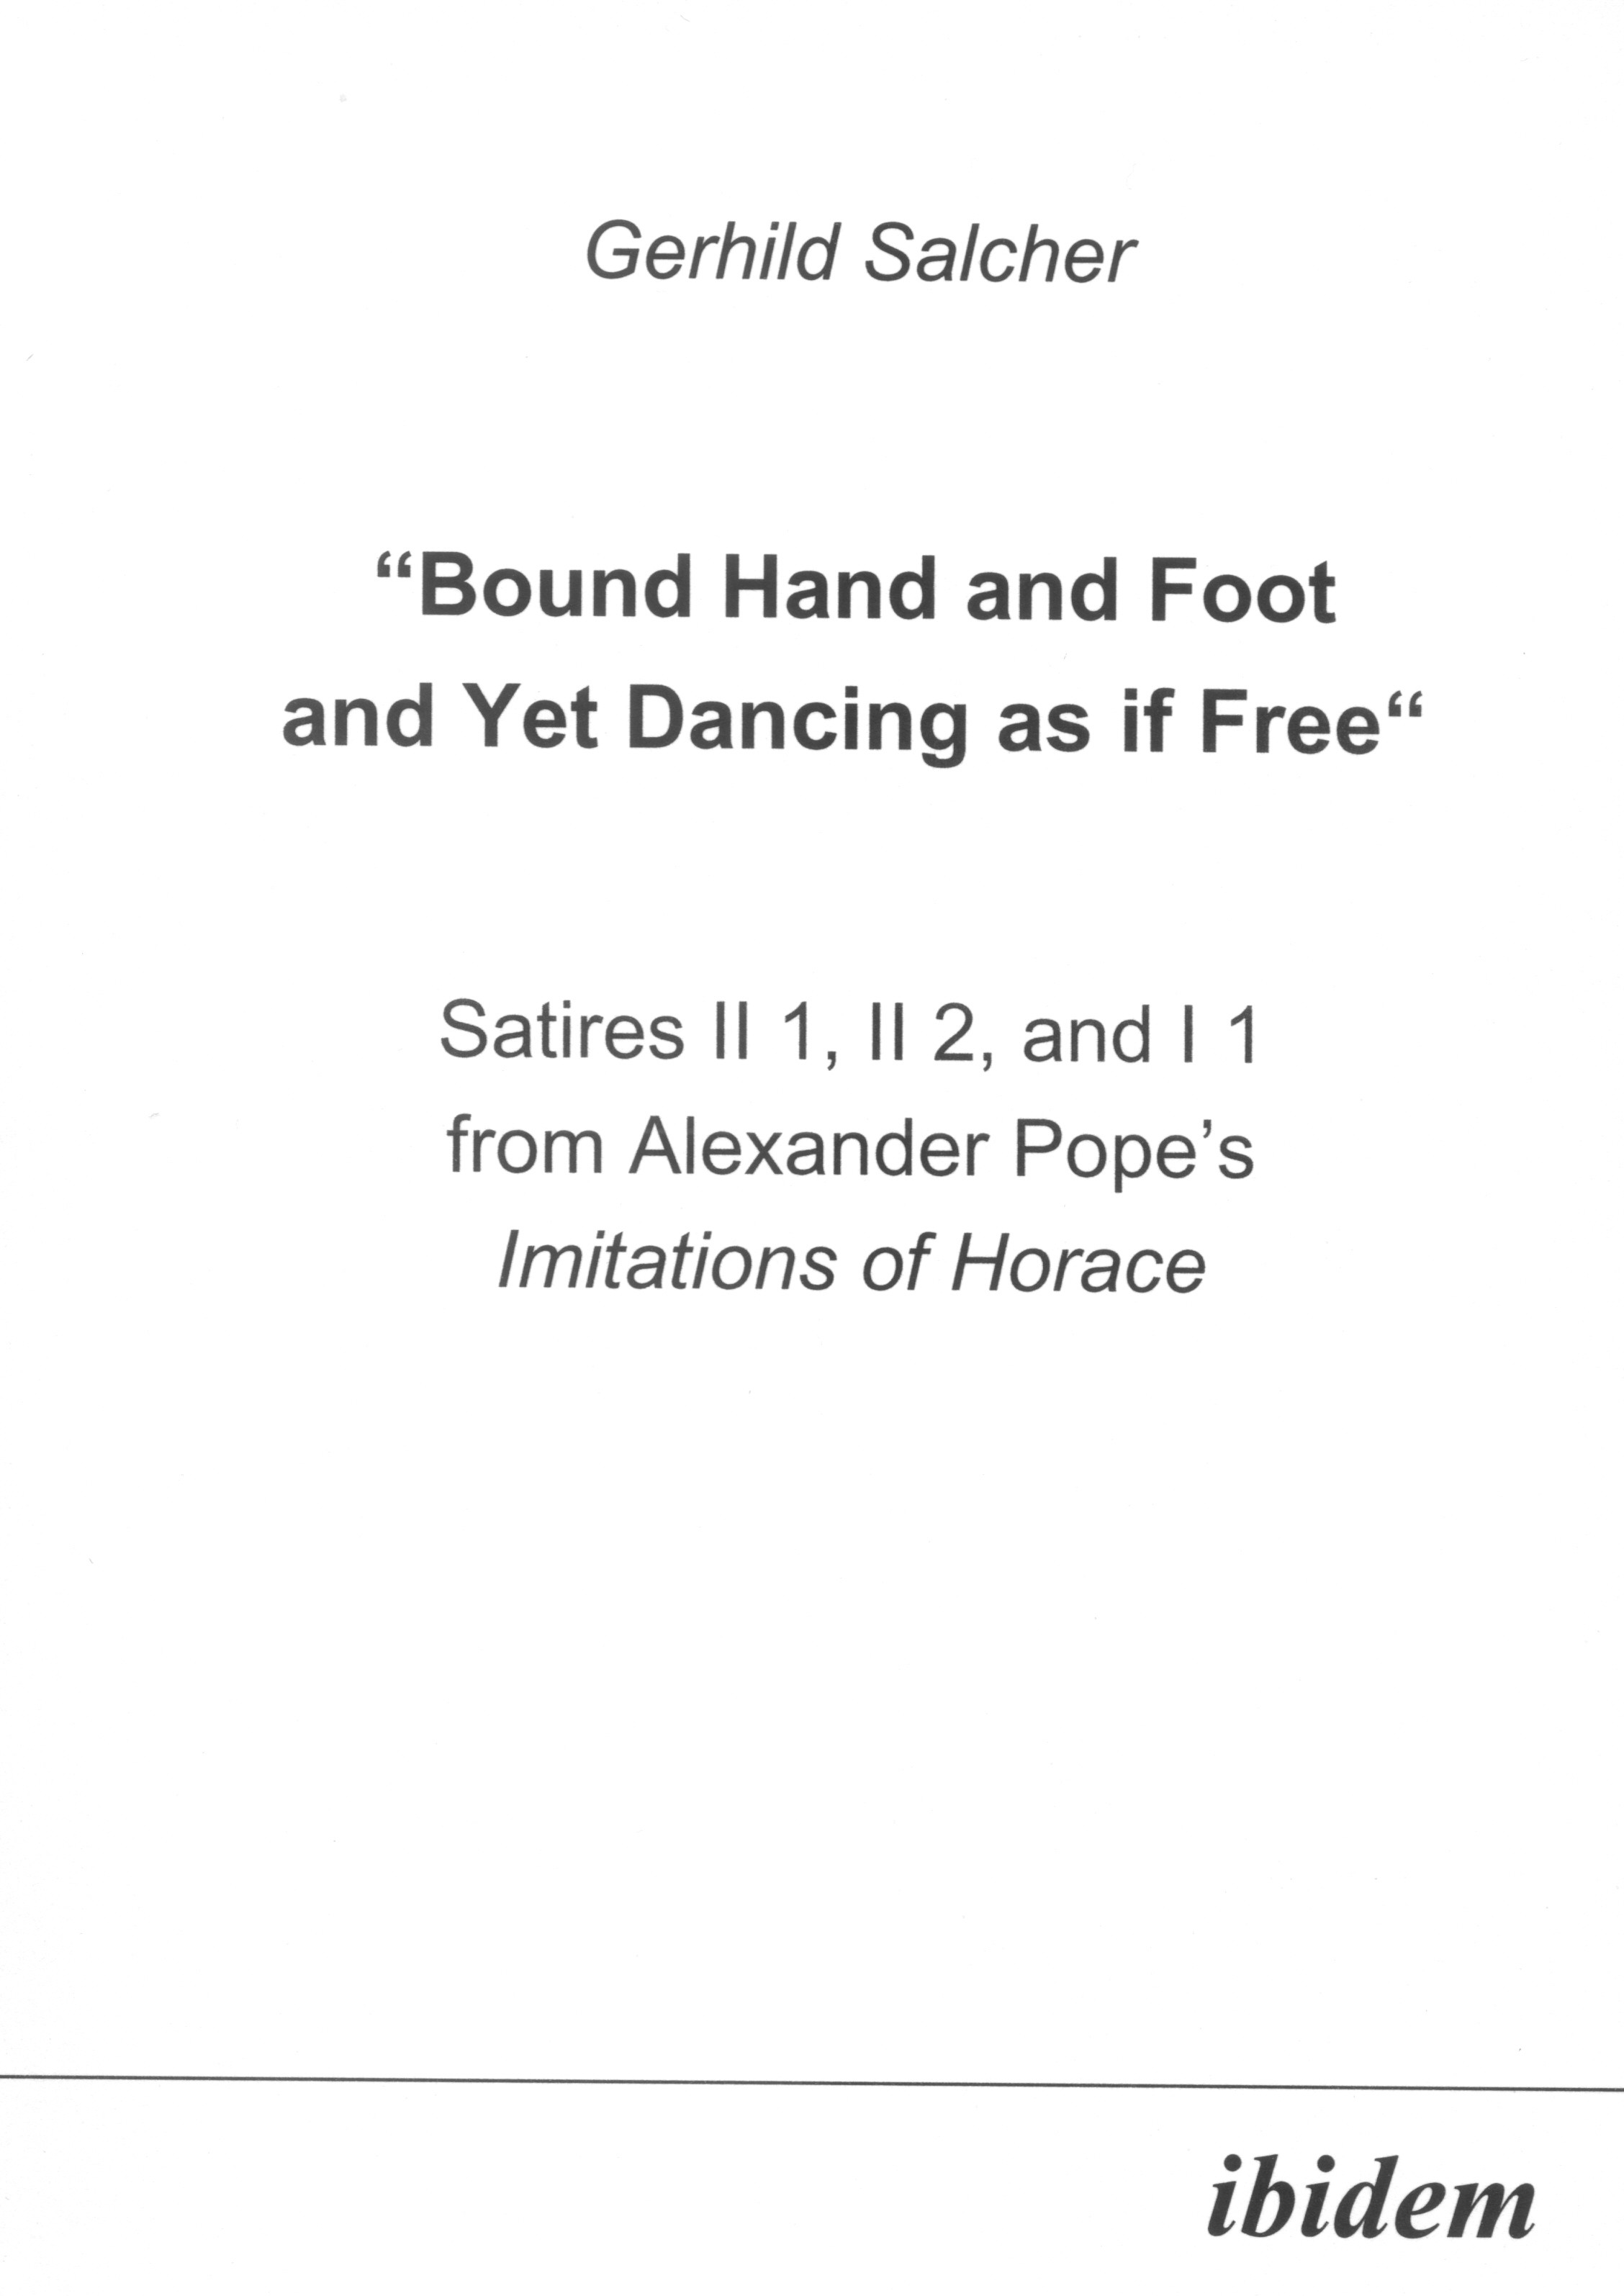 """Bound Hand and Foot and yet Dancing as if Free"" Satires II 1, II 2, and I 2 from Alexander Pope's Imitations of Horace"